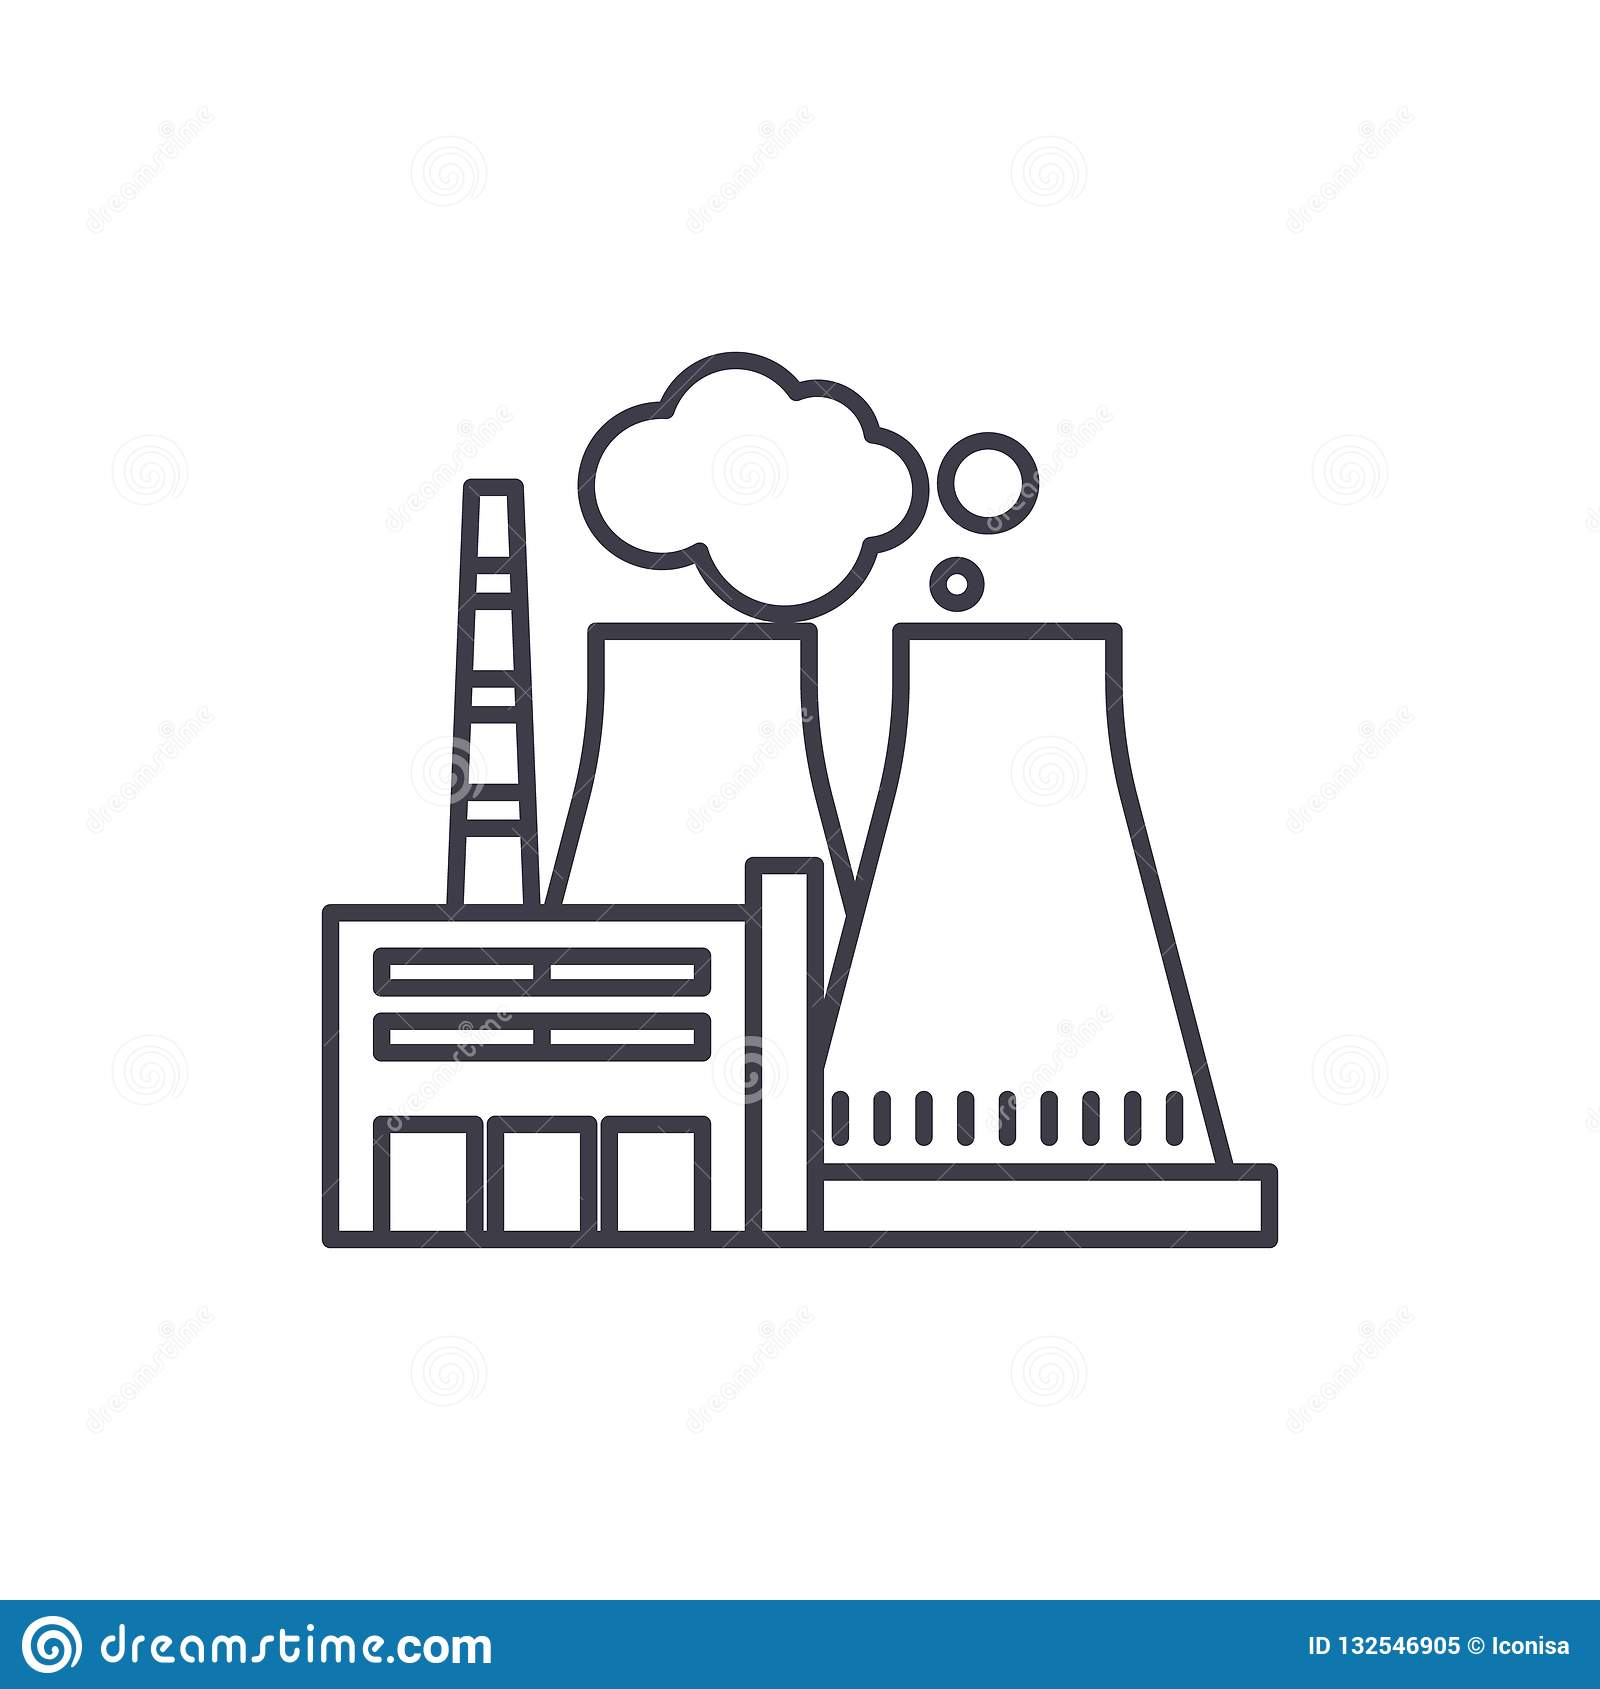 1e5ac837 Thermal power plant line icon concept. Thermal power plant vector linear  illustration, sign, symbol